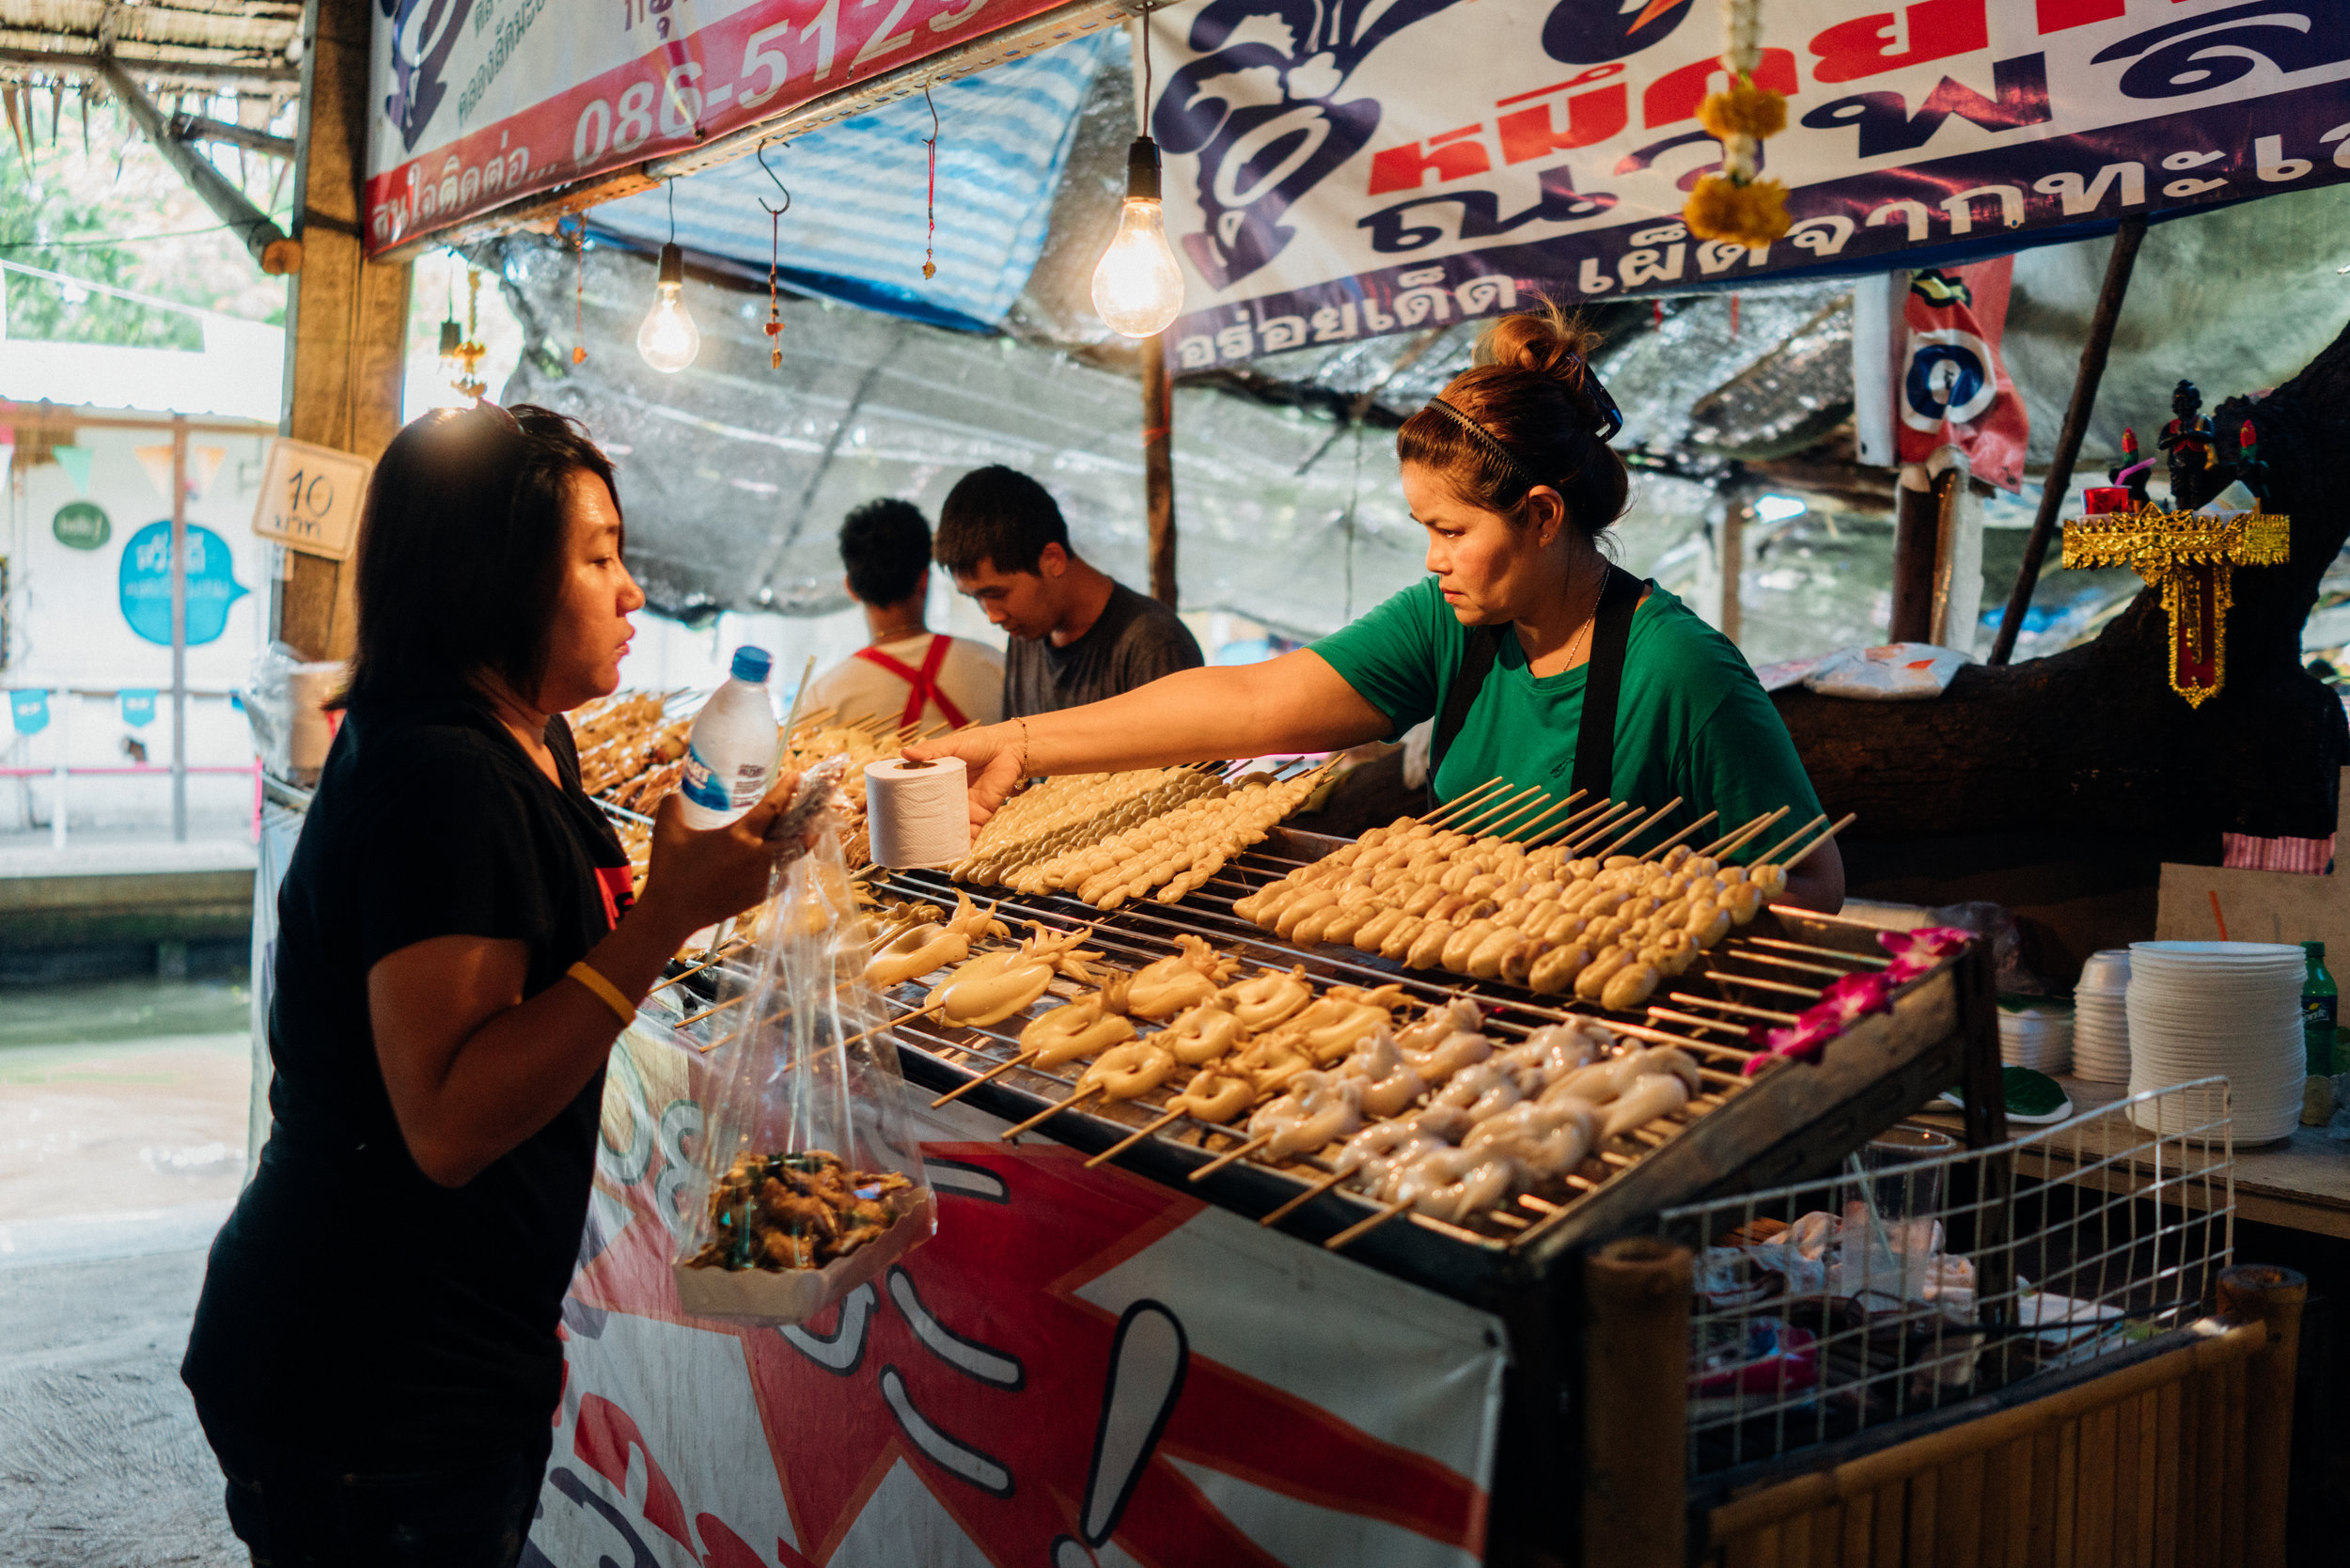 Meat and fish on skewers is a common snack in Bangkok